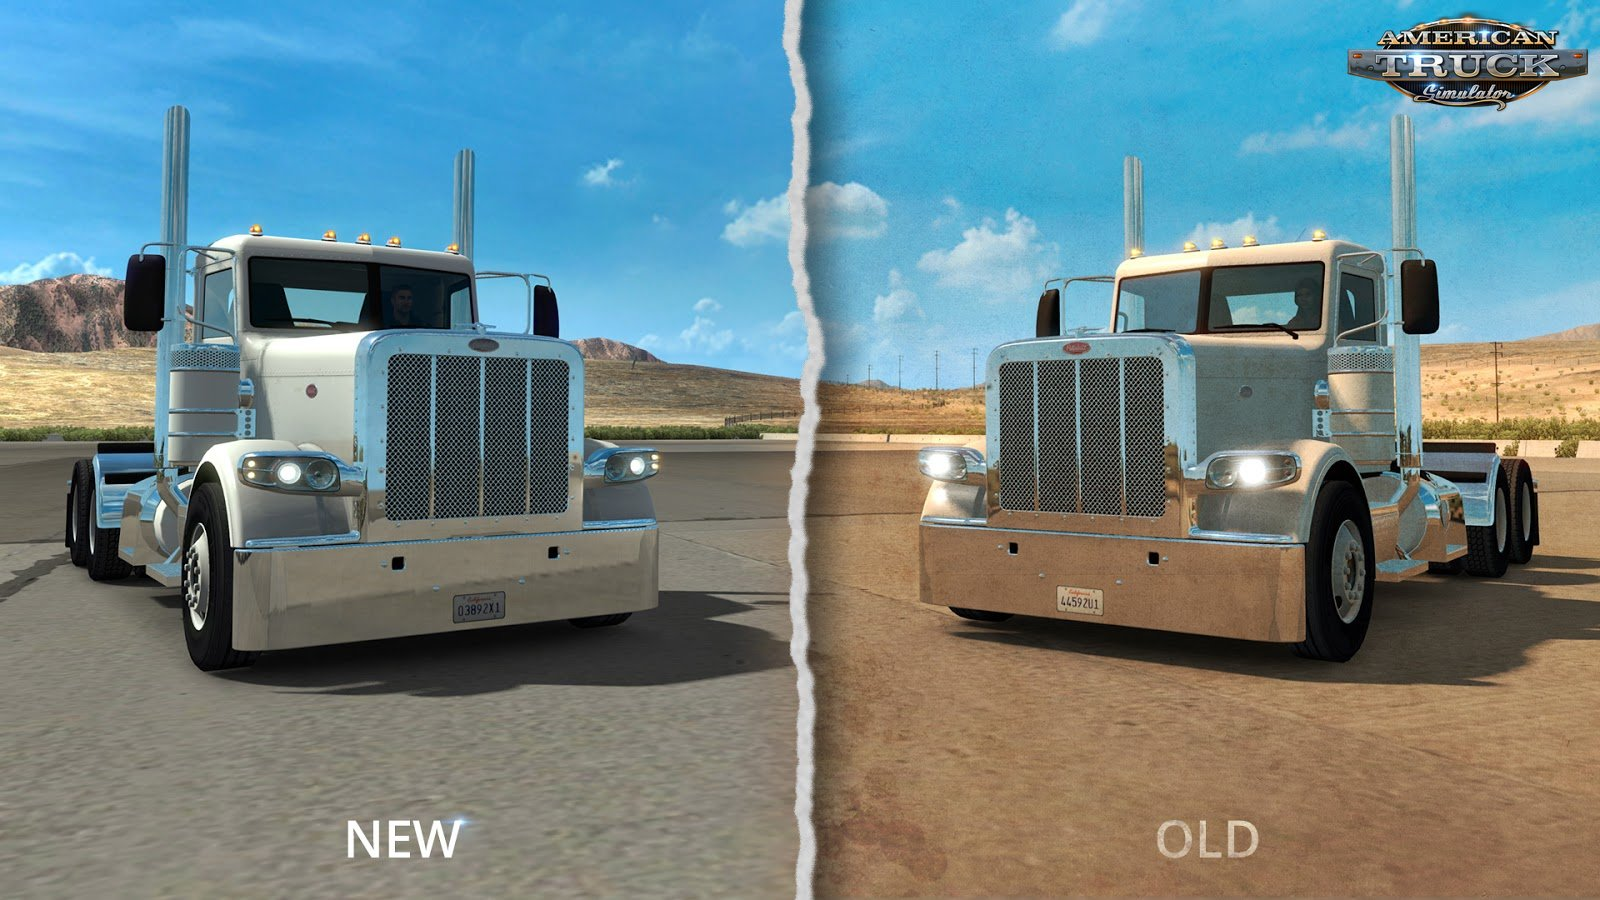 Better light flares for vehicles for American Truck Simulator